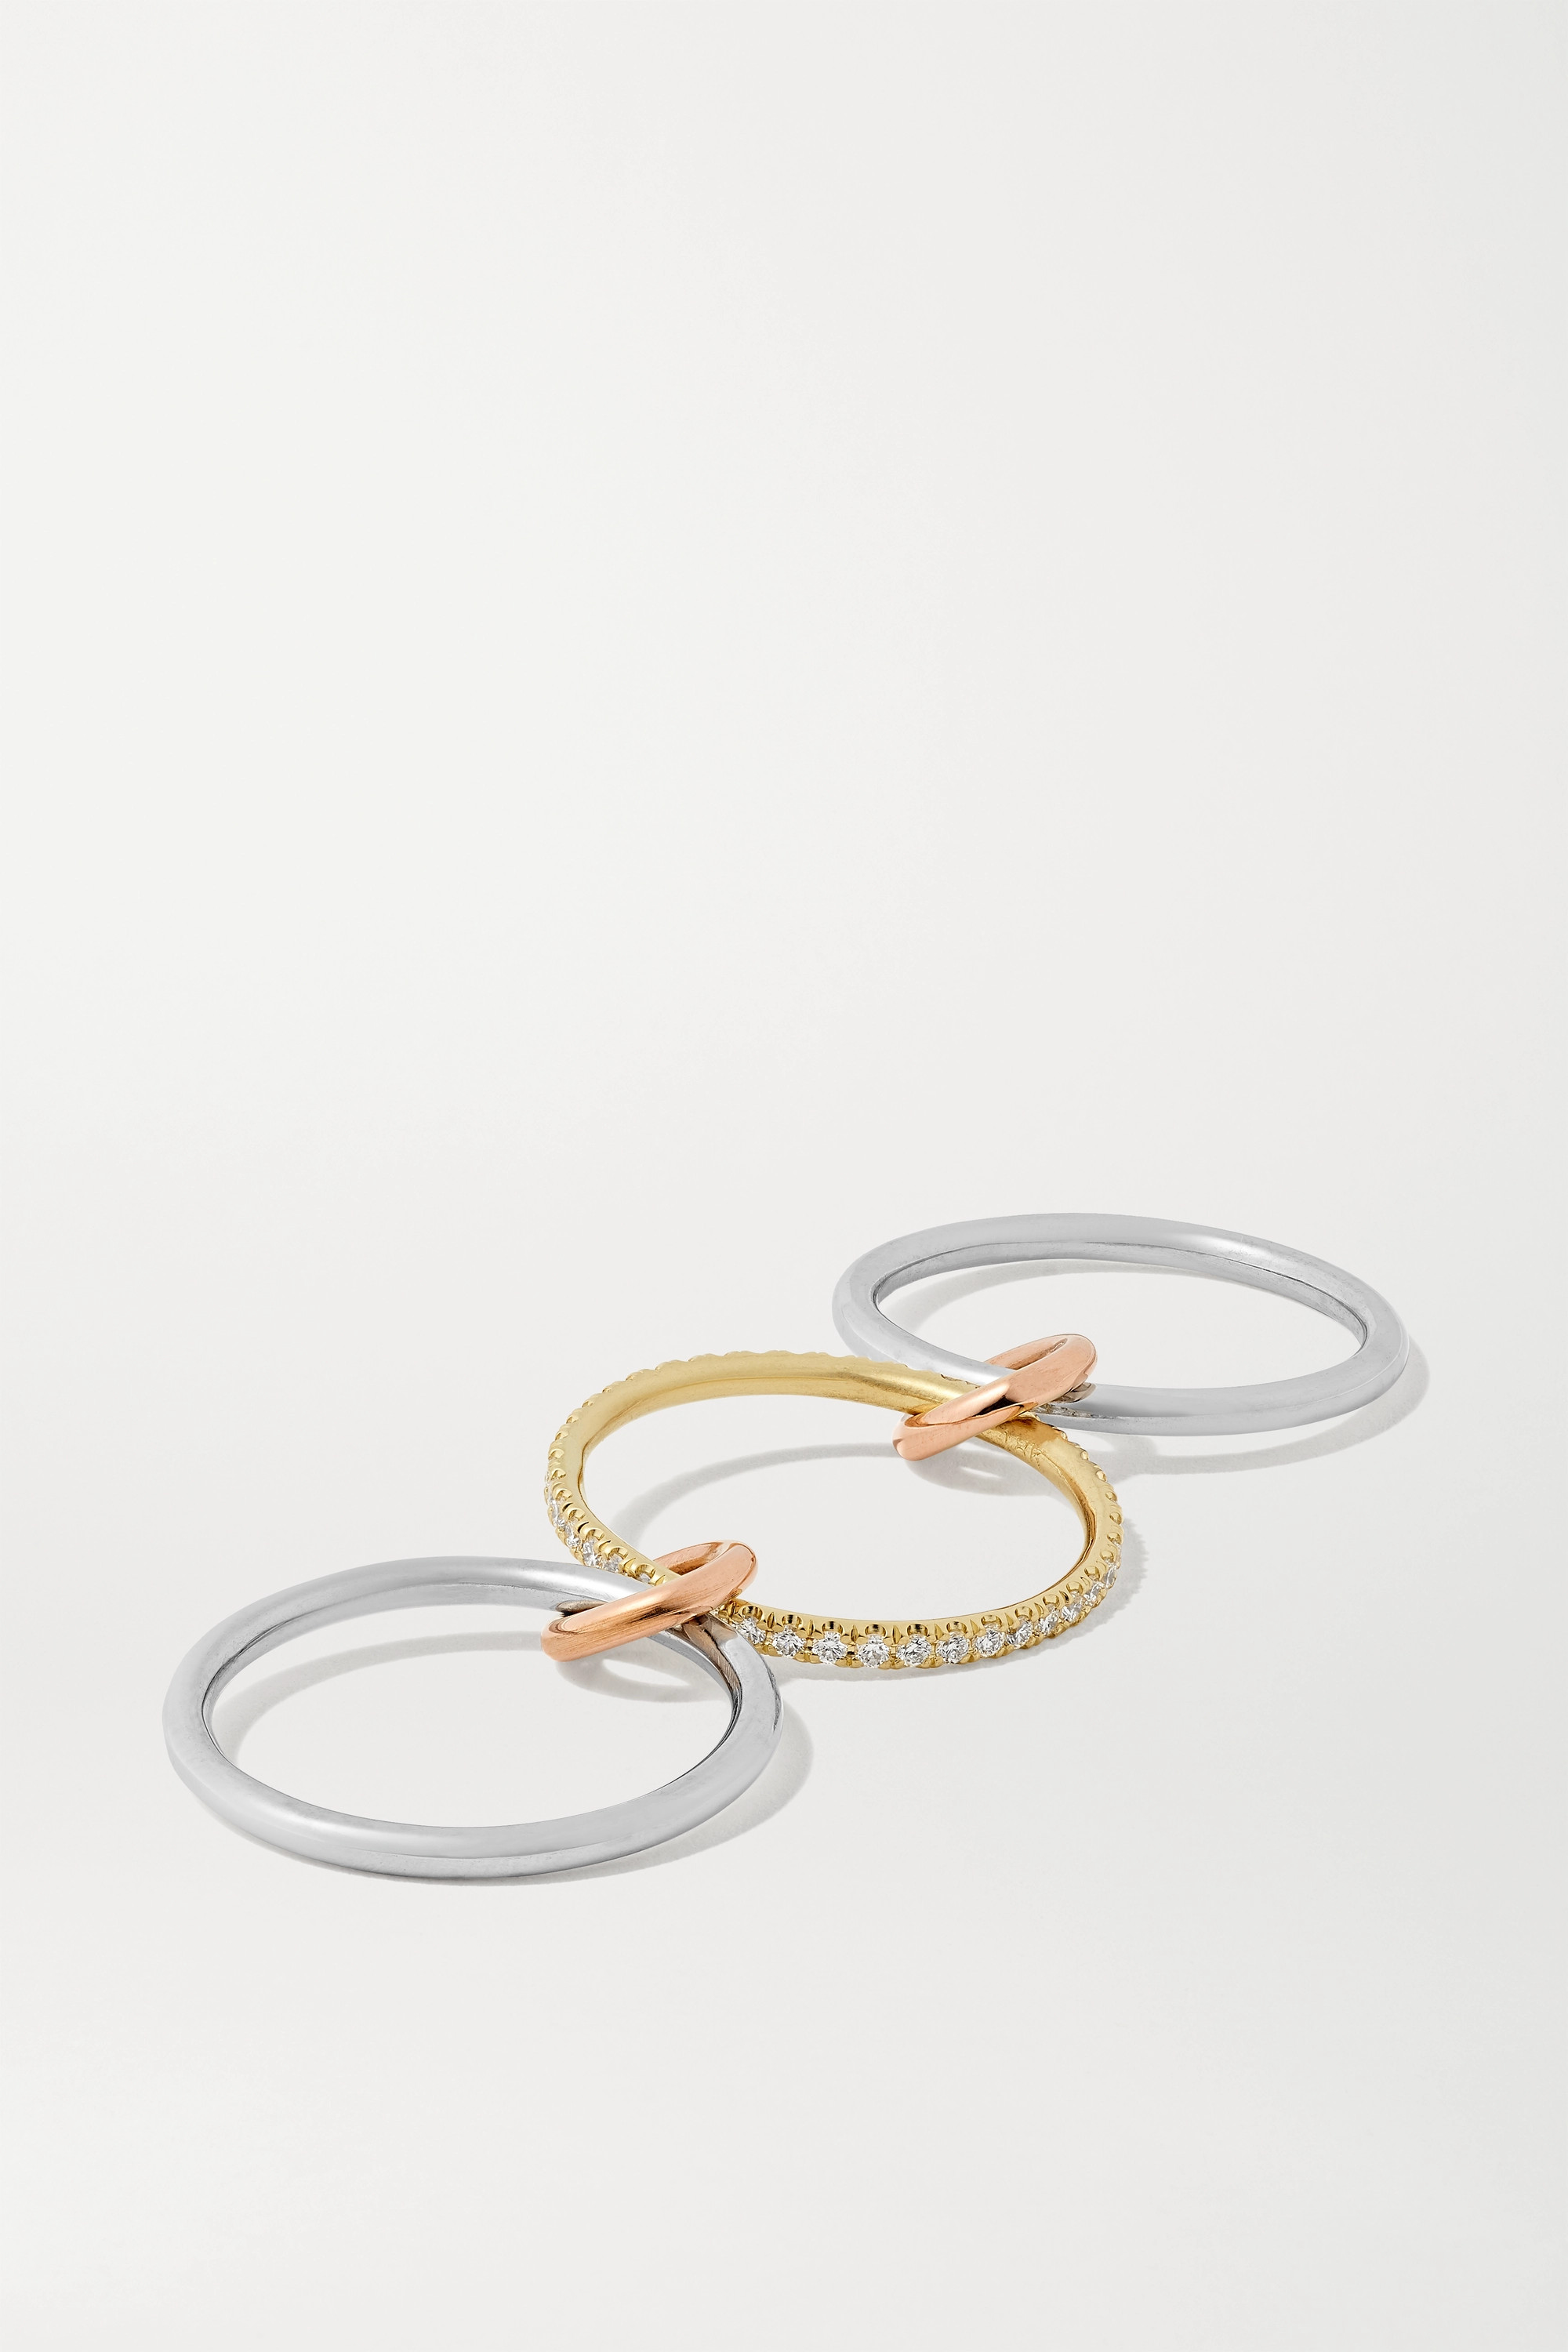 Spinelli Kilcollin Sonny MX set of three 18-karat white, yellow and rose gold and diamond rings